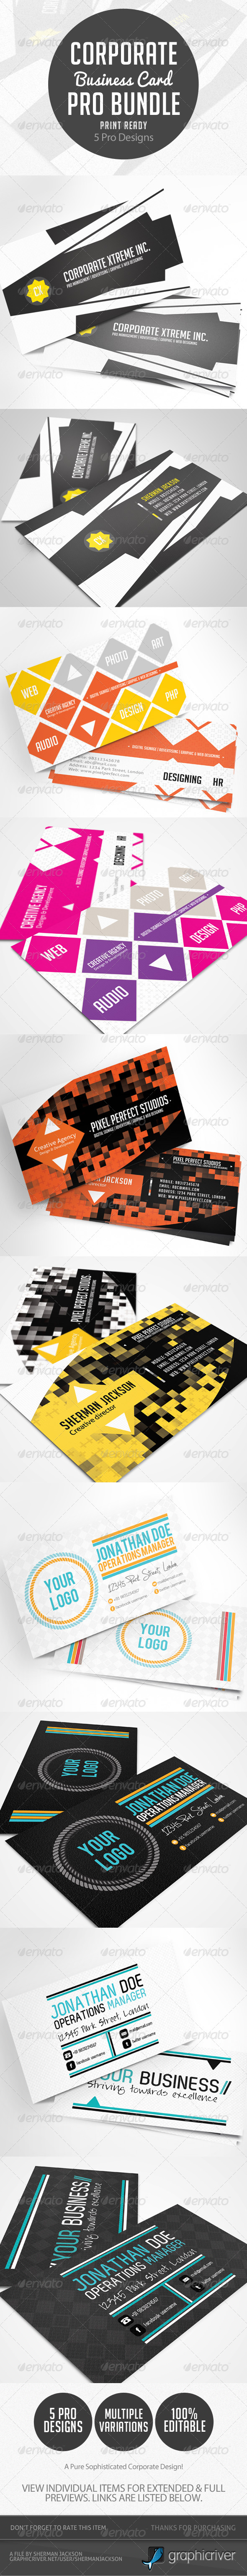 GraphicRiver Corporate & Creative Business Card Pro Bundle 4777298